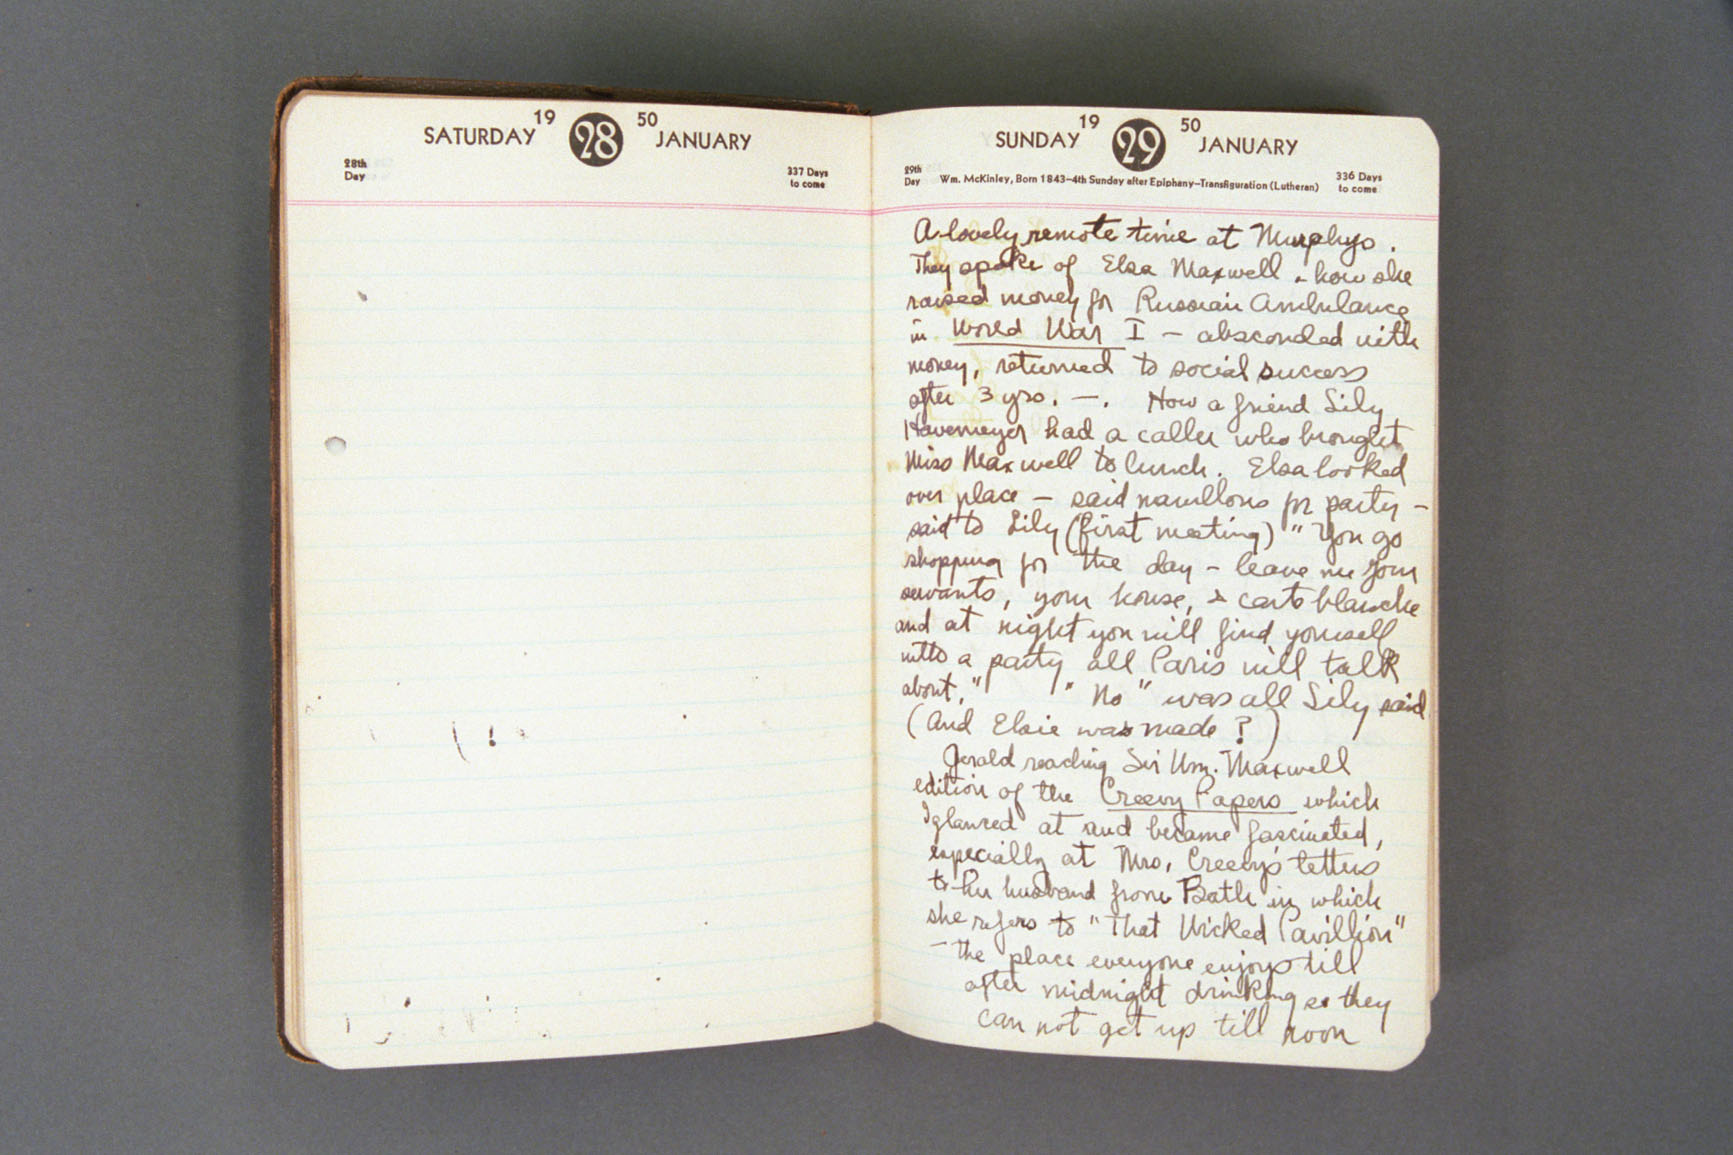 1950 diary excerpt a p03 14 the diaries of dawn powell